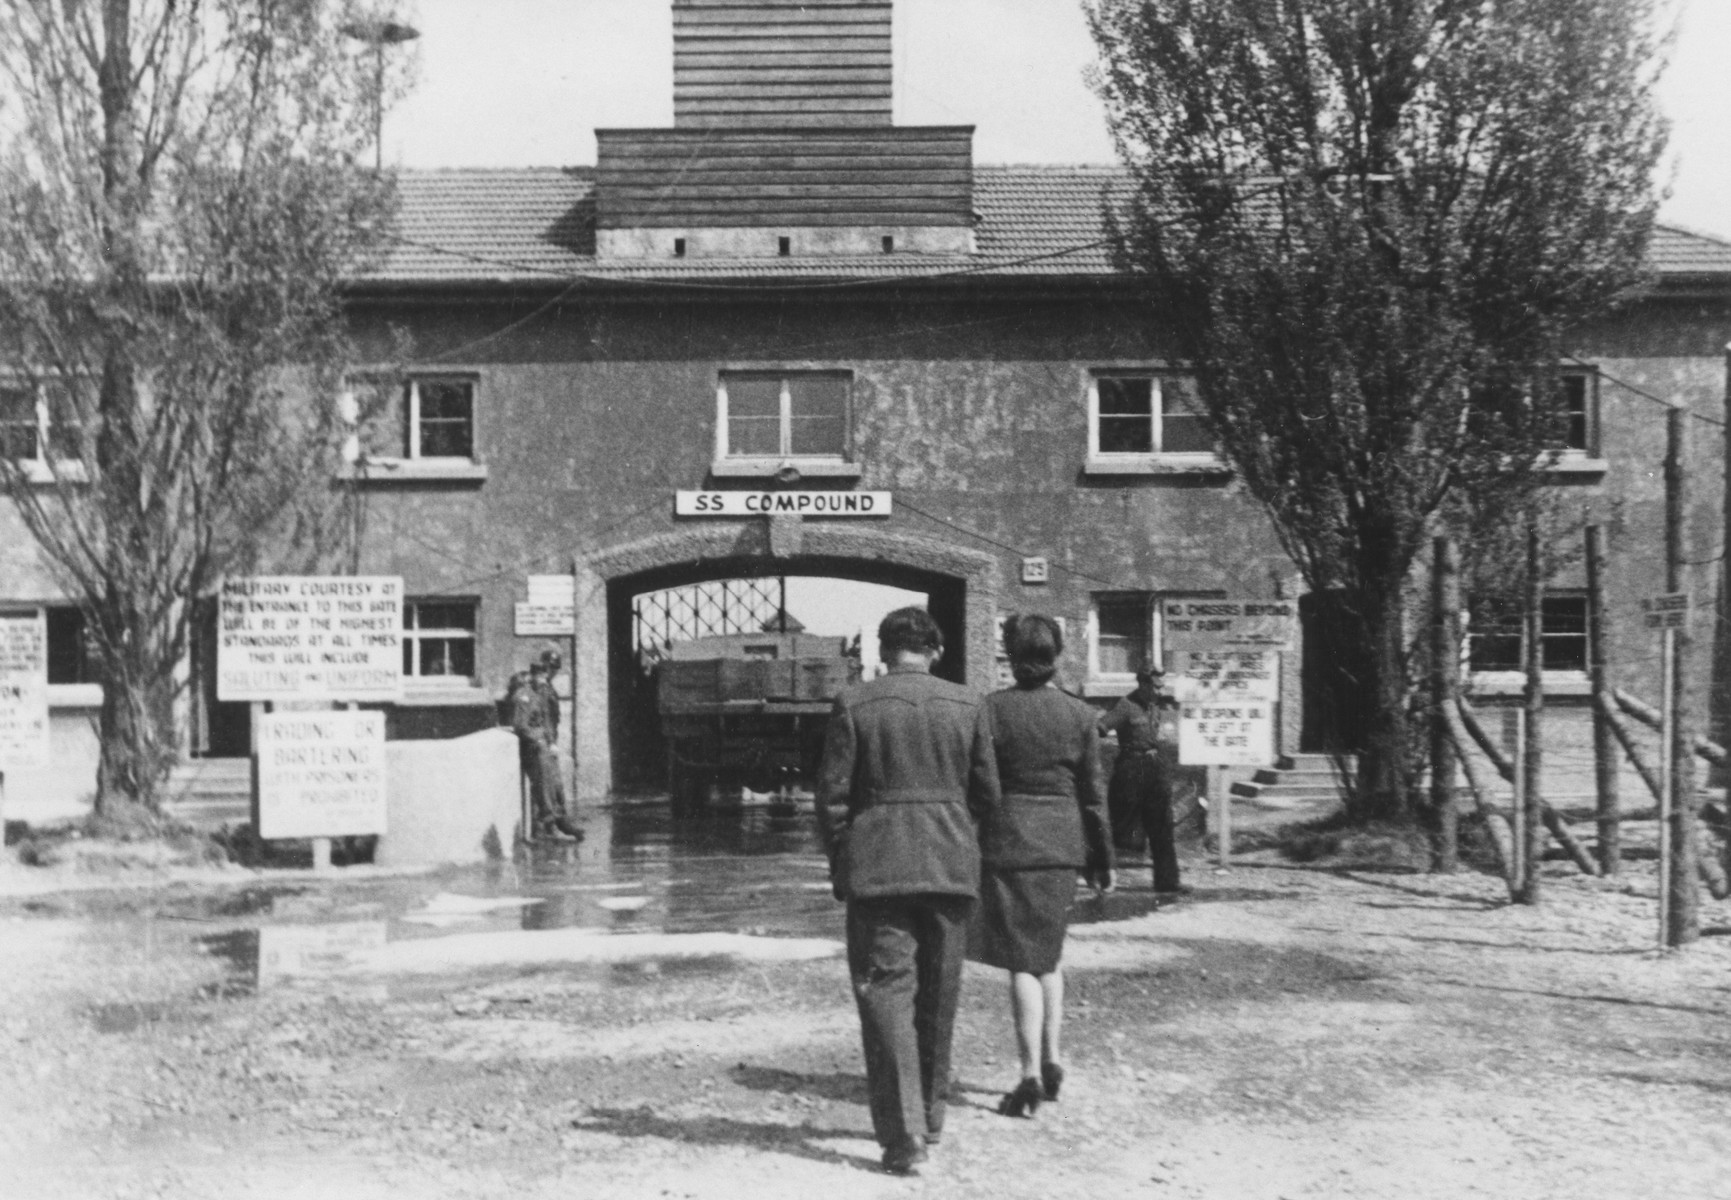 Red Cross worker Adeline Bustelman visits the former Dachau SS compound approximately one year after its liberation.